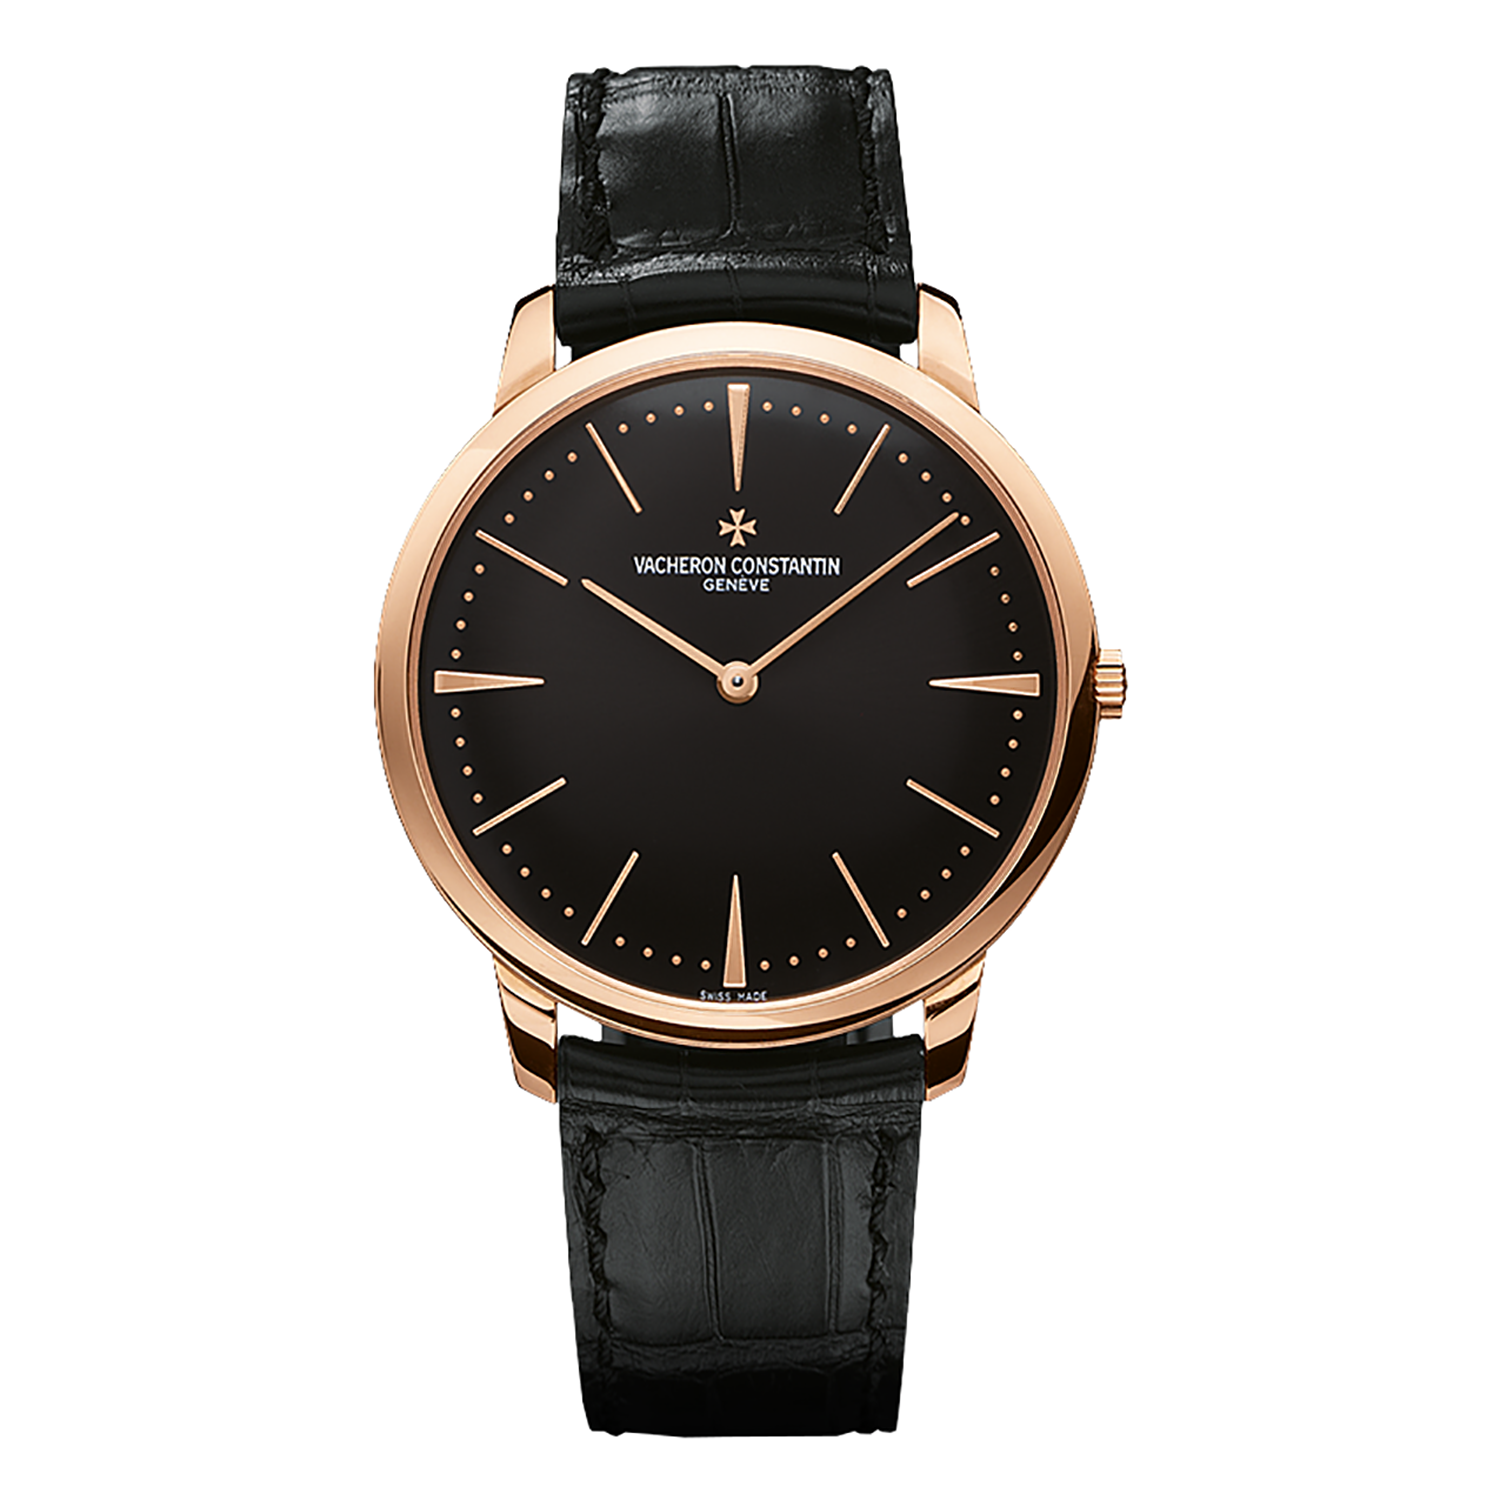 swiss Vacheron Constantin watch replica